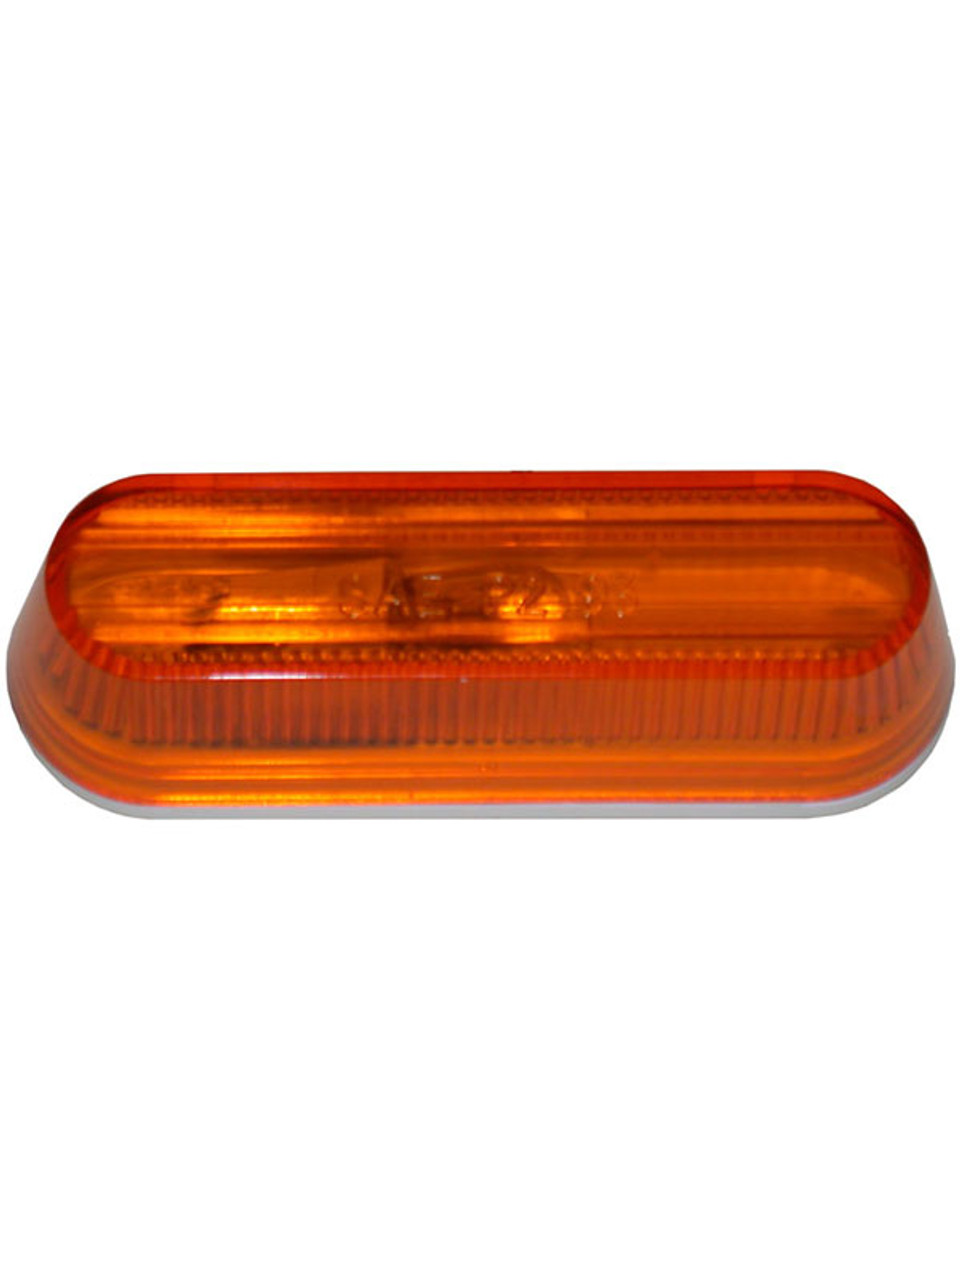 136A --- Oblong Clearance/Side Marker Light